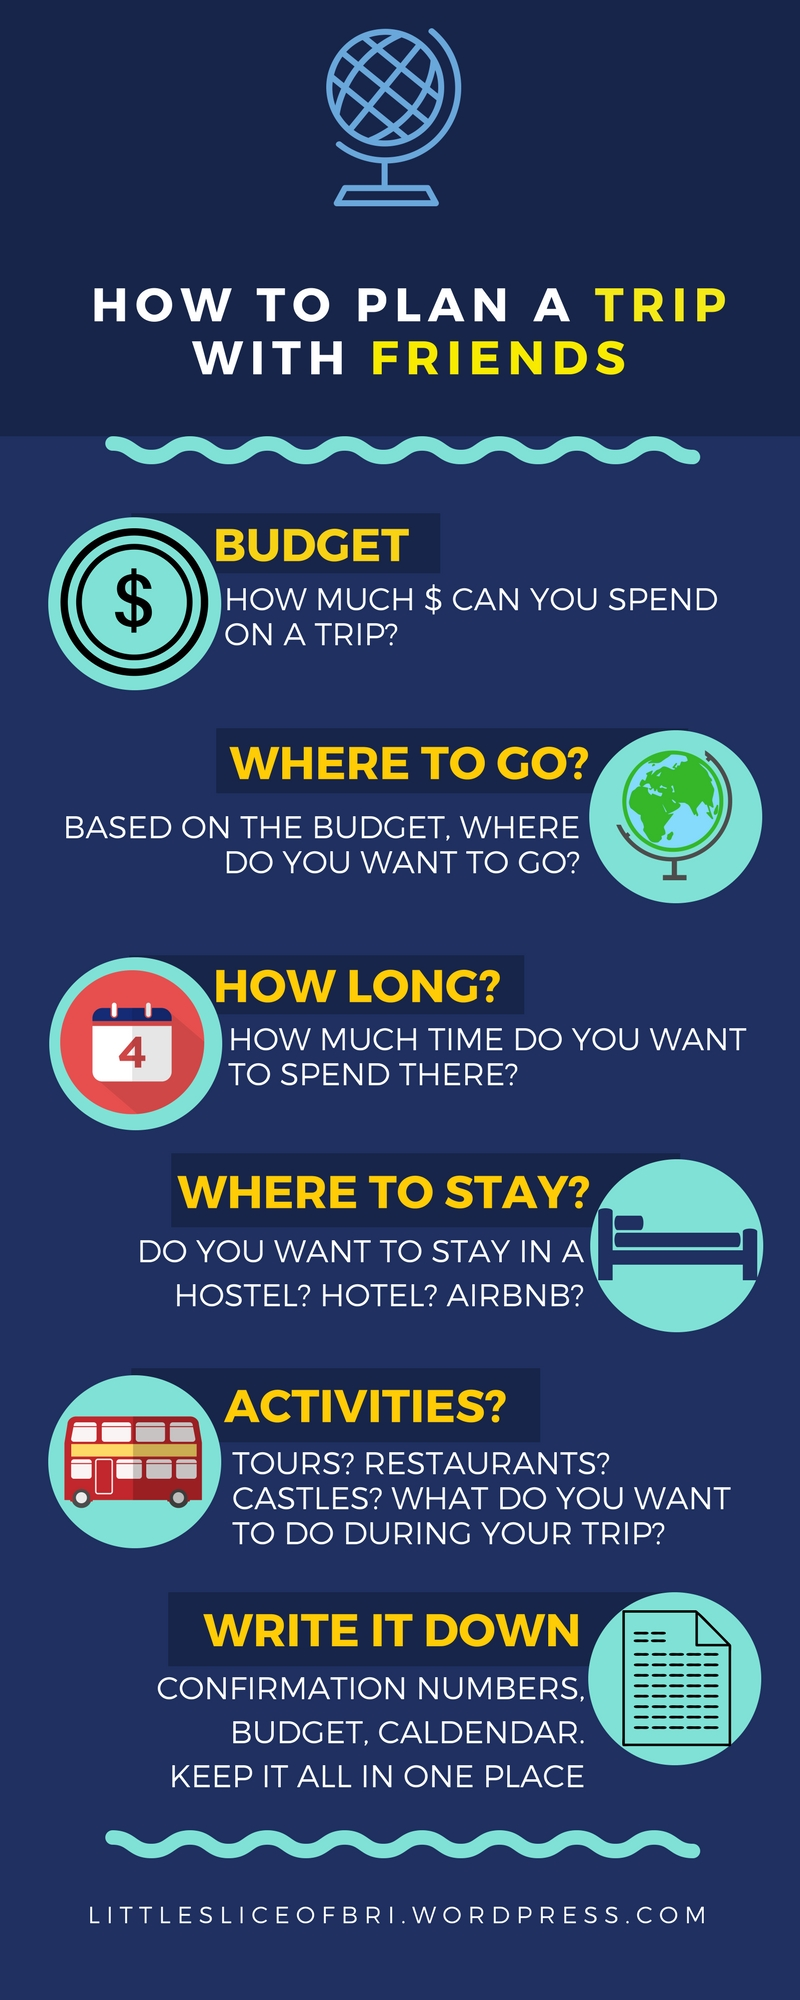 An info graphic detailing how to go about planning a trip with friends. The items are detailed in the text in the rest of the post.